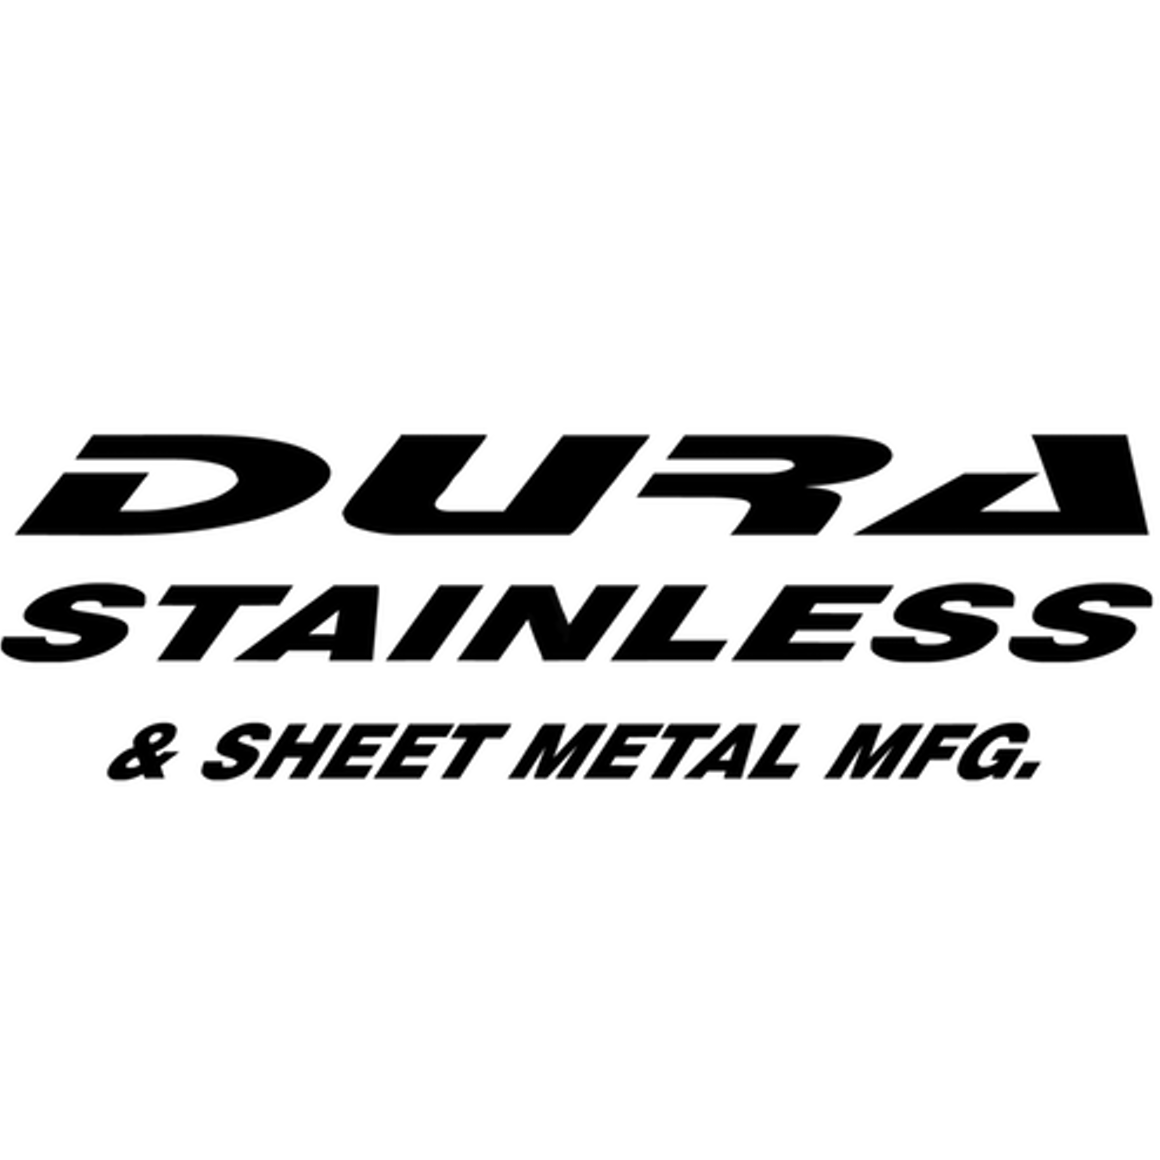 Dura Stainless & Sheet Metal Mfg logo